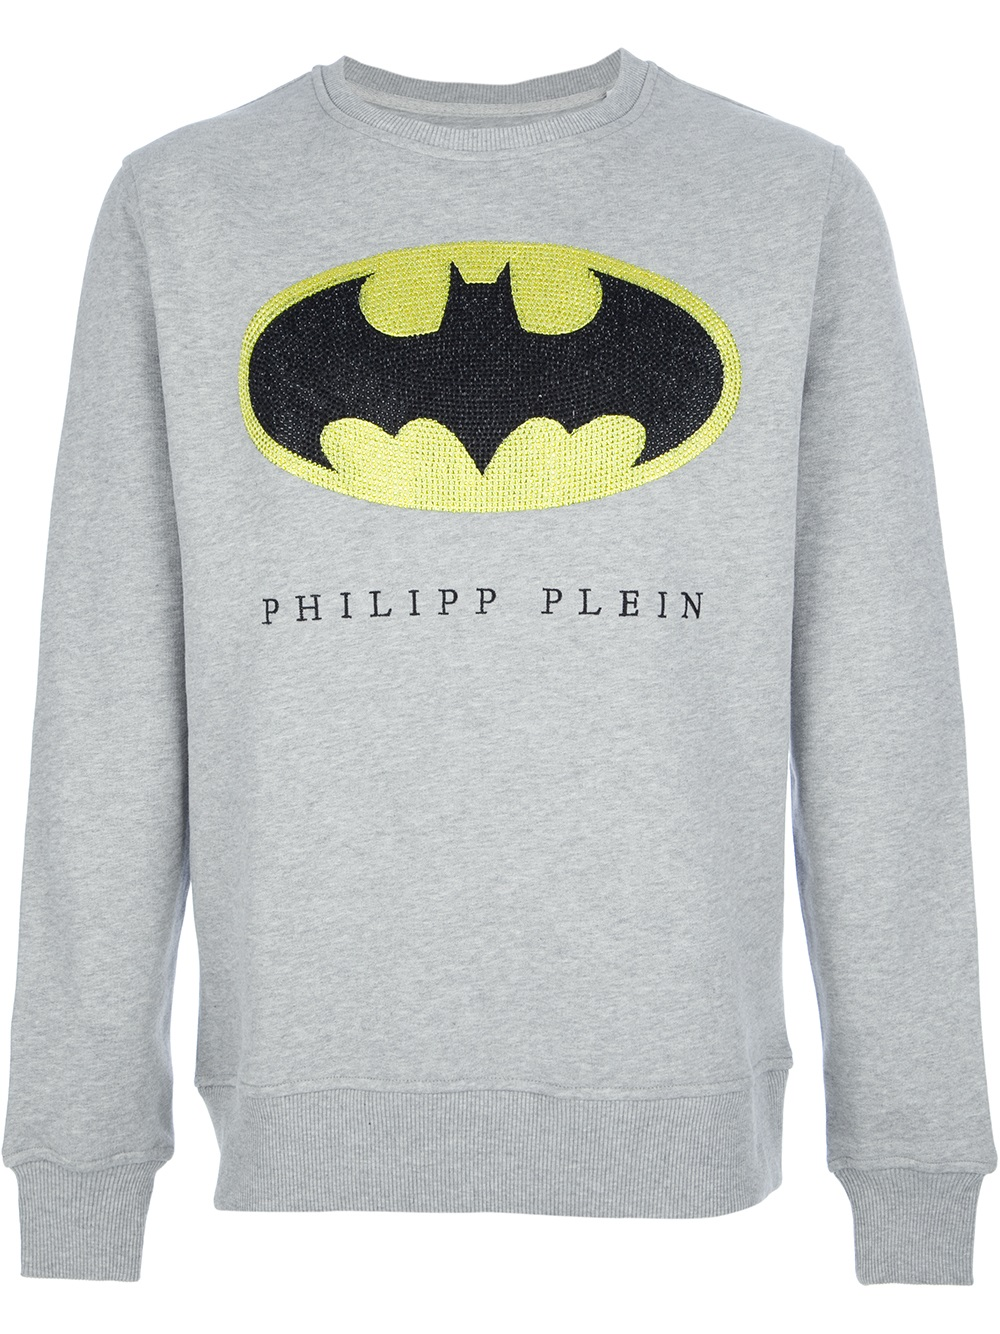 467048d38fa Philipp Plein Batman Sweatshirt in Gray for Men - Lyst